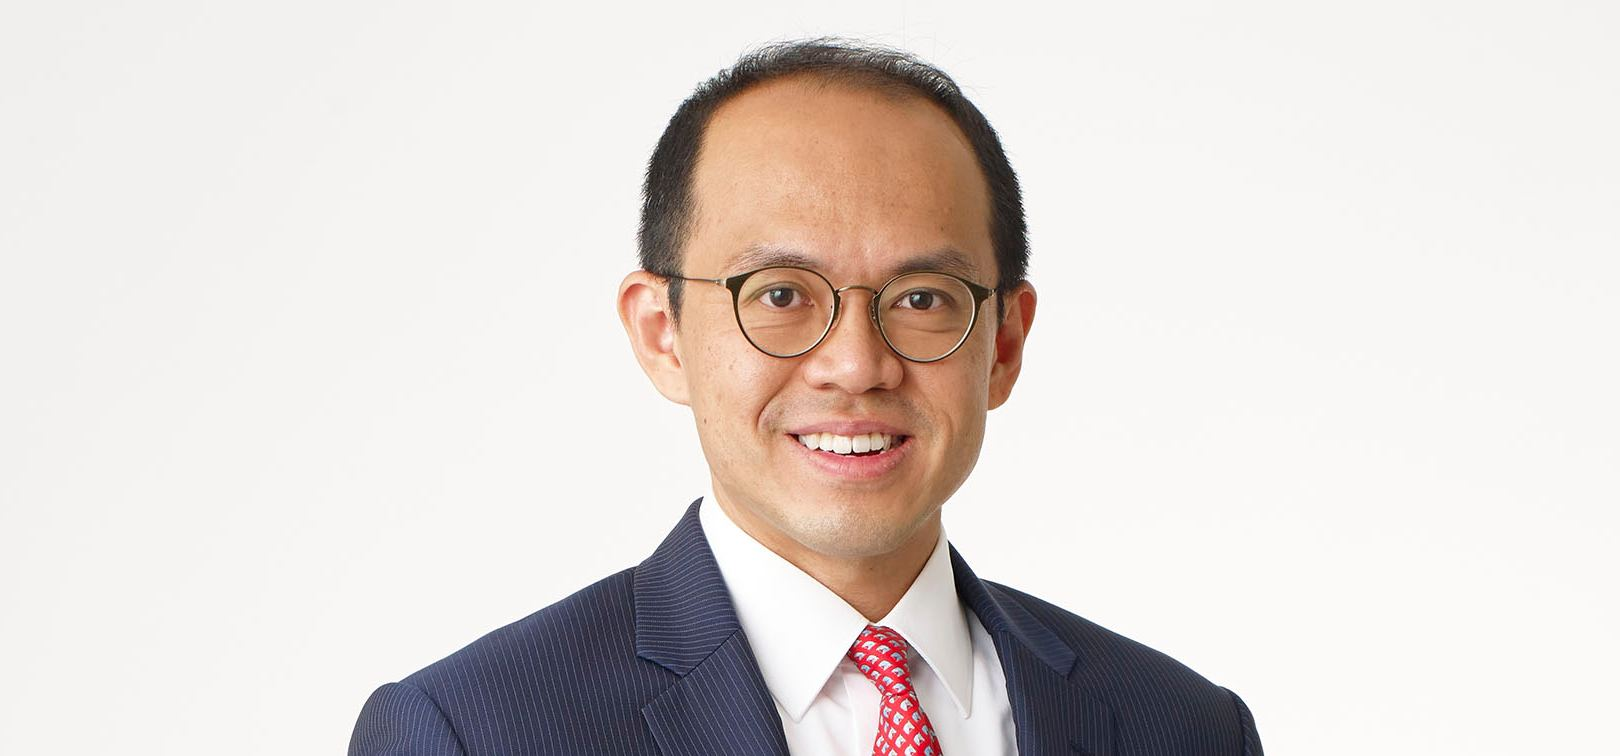 Keppel Infrastructure Trust appoints Keppel Capital executive as new CEO - THE EDGE SINGAPORE